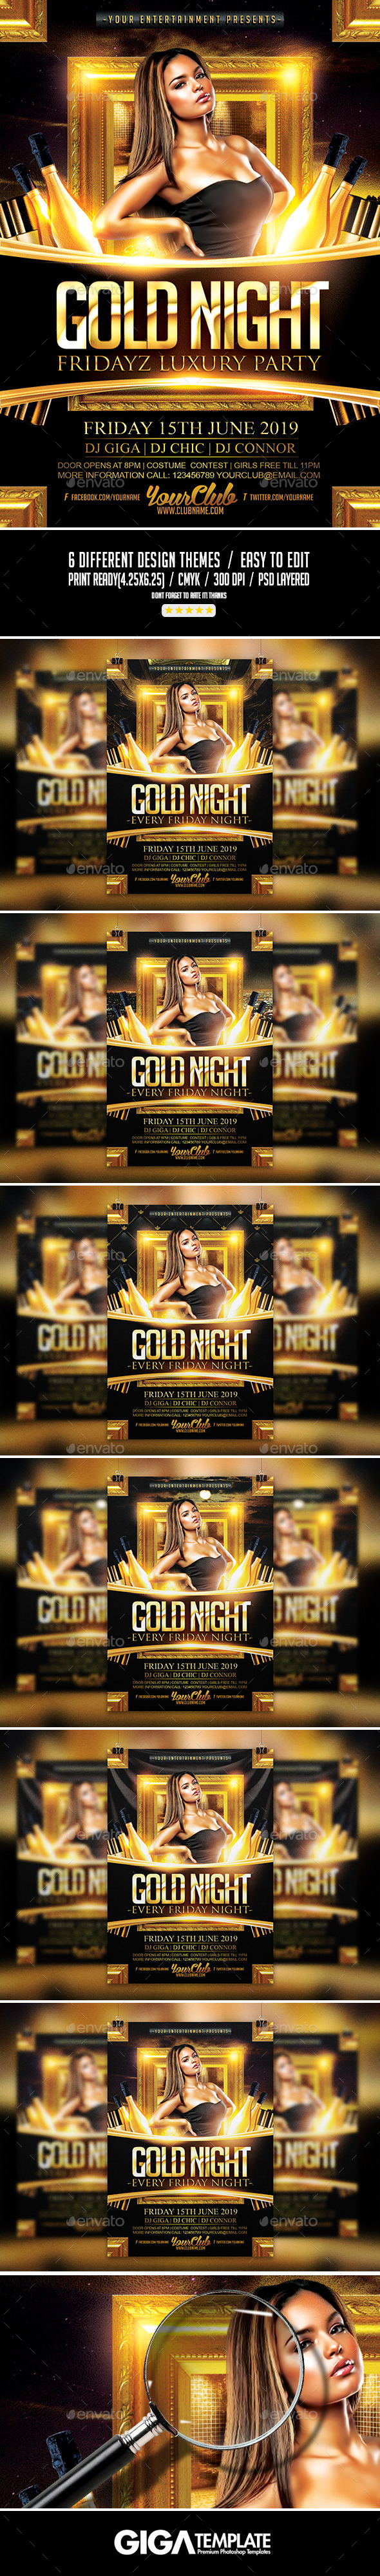 GraphicRiver Gold Night Fridayz Luxury Flyer PSD Template 11265160